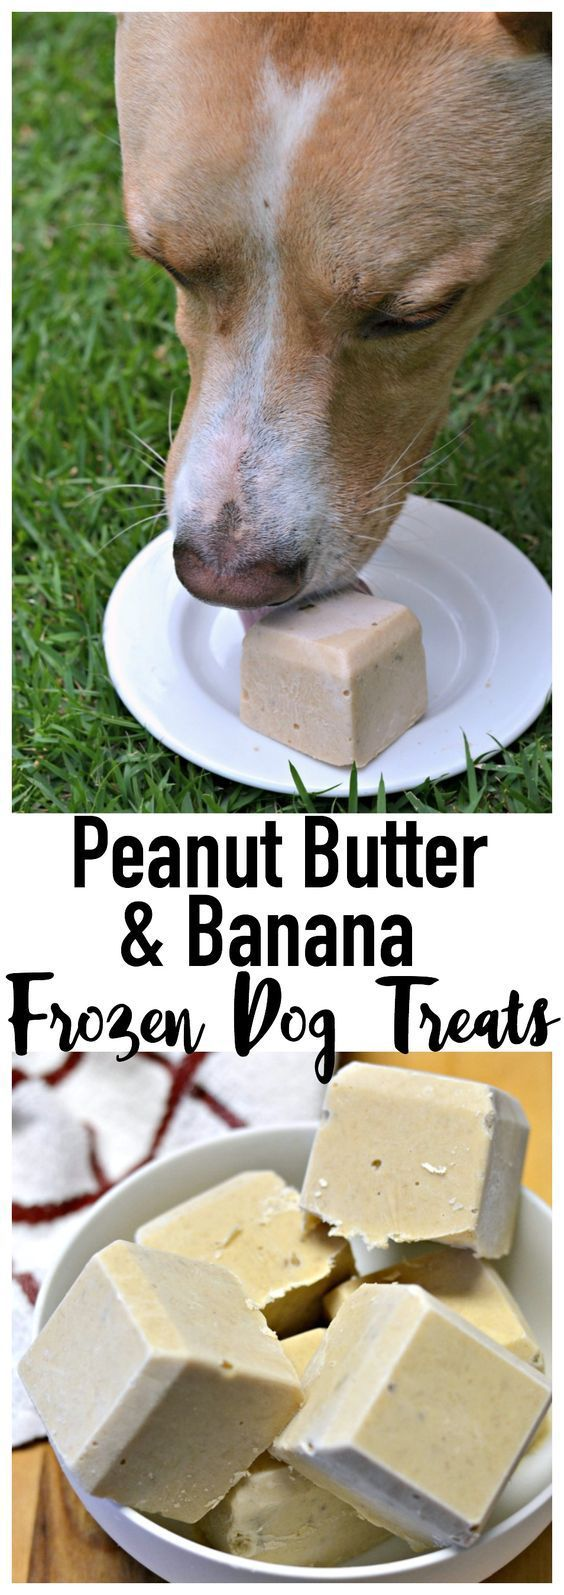 It's been a while since I've posted a homemade dog treat recipe, but today I've got a great one to share! With summer on the horizon, it's about time I made a frozen treat for Cesar to snack on! Not only are these frozen dog treats a tasty reward for man's best friend, but they …